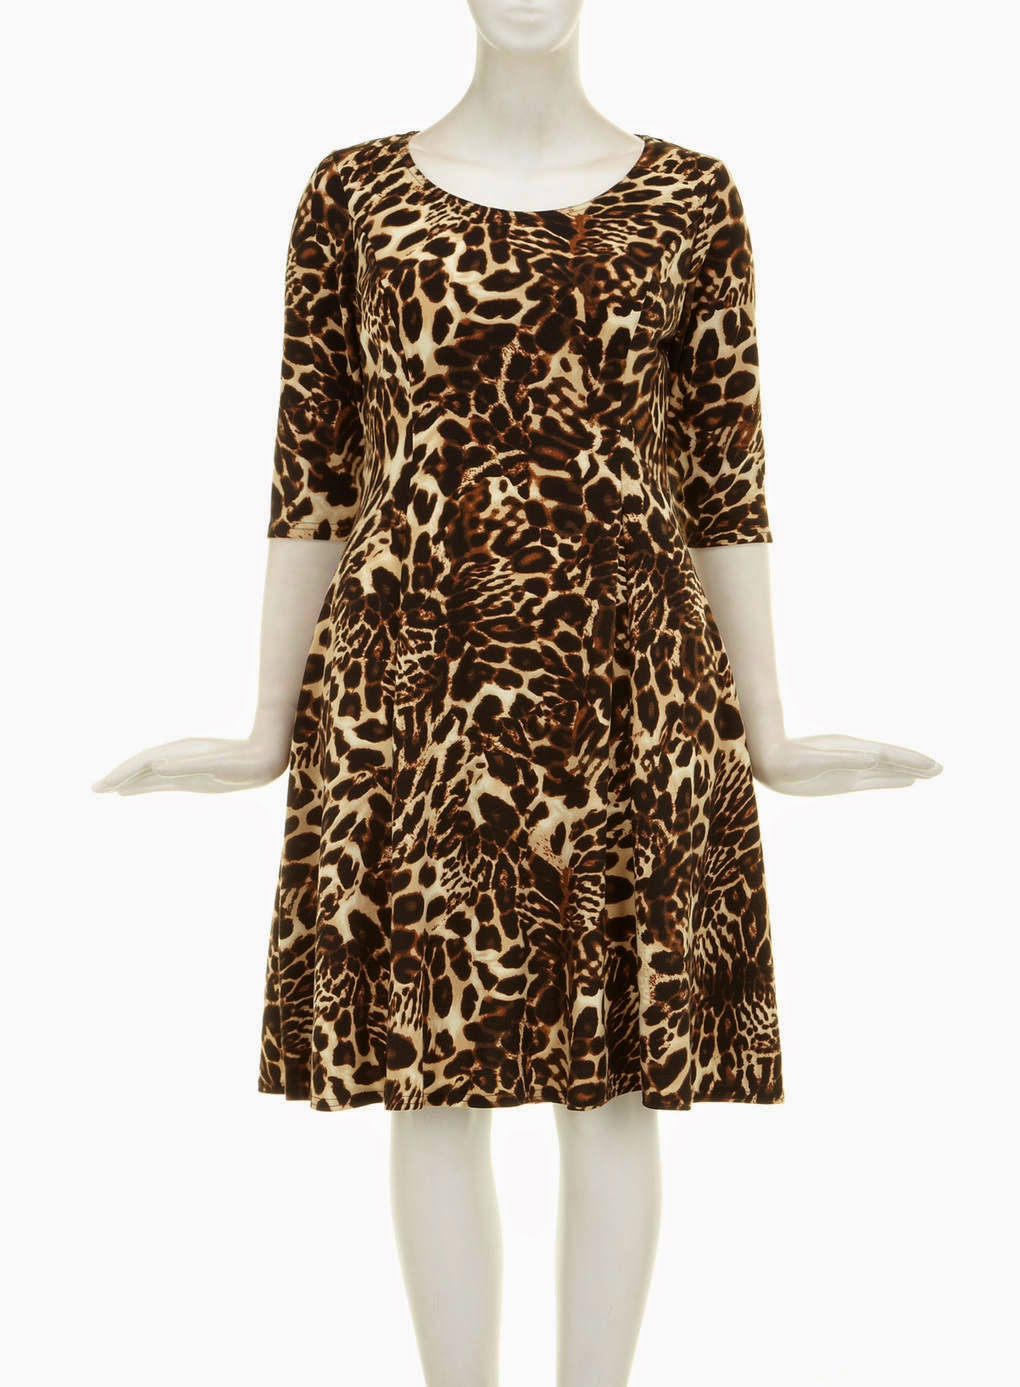 9636ca1749d Evans Scarlett   Jo Animal Print Fit and Flare Dress 14 - Curvy Wordy